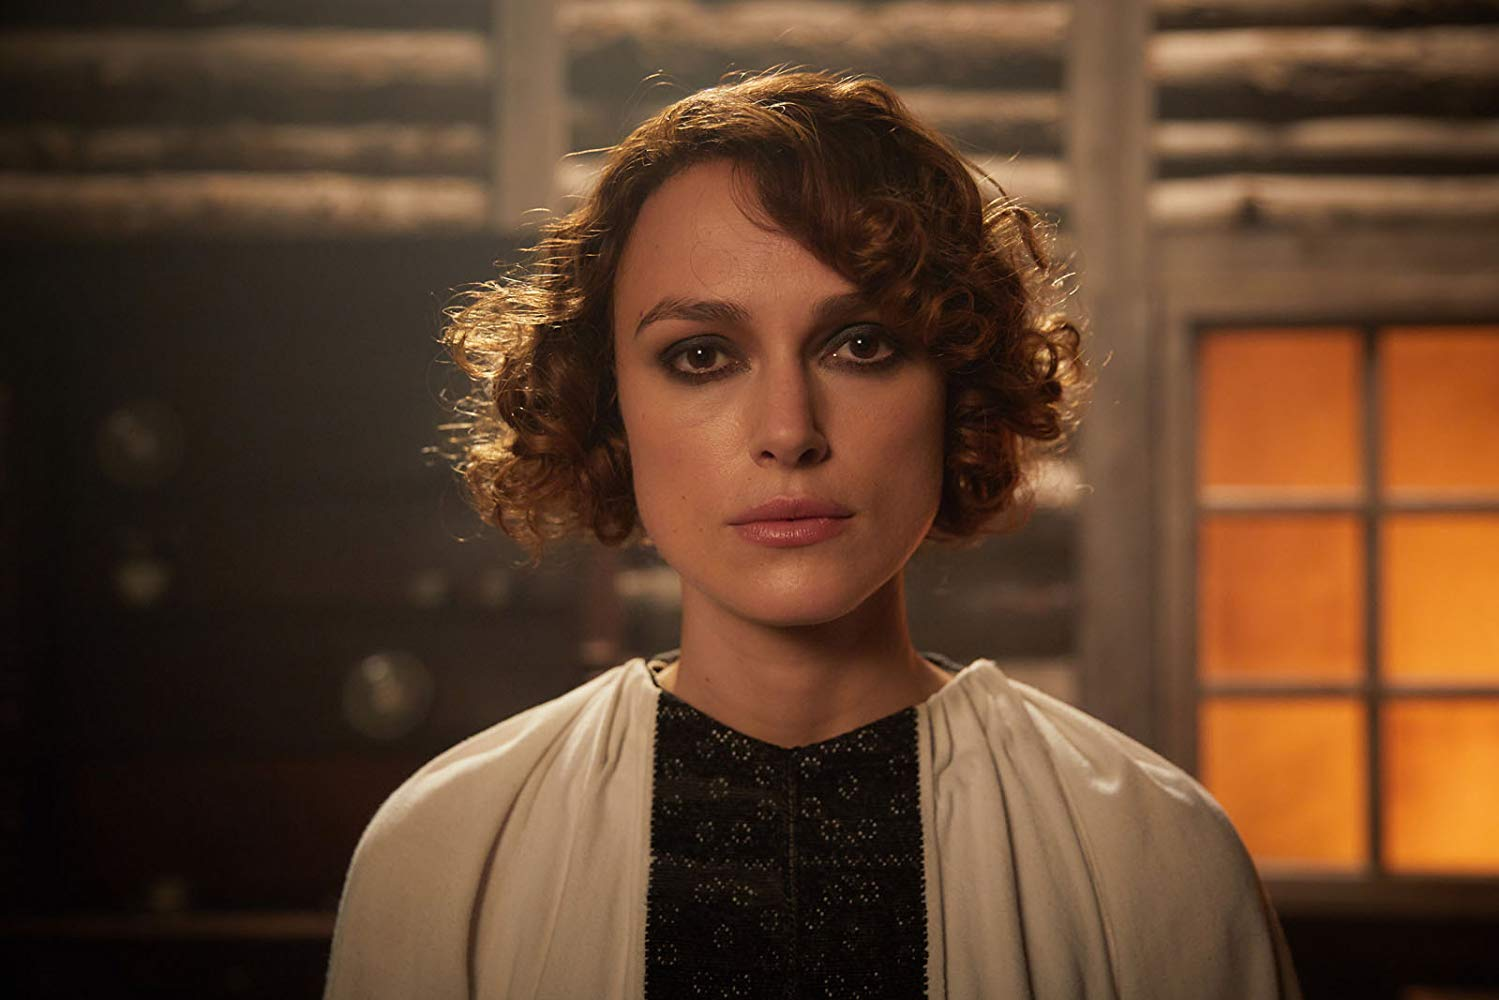 Keira Knightley as Sidonie-Gabrielle Colette in the biographical drama film Colette.